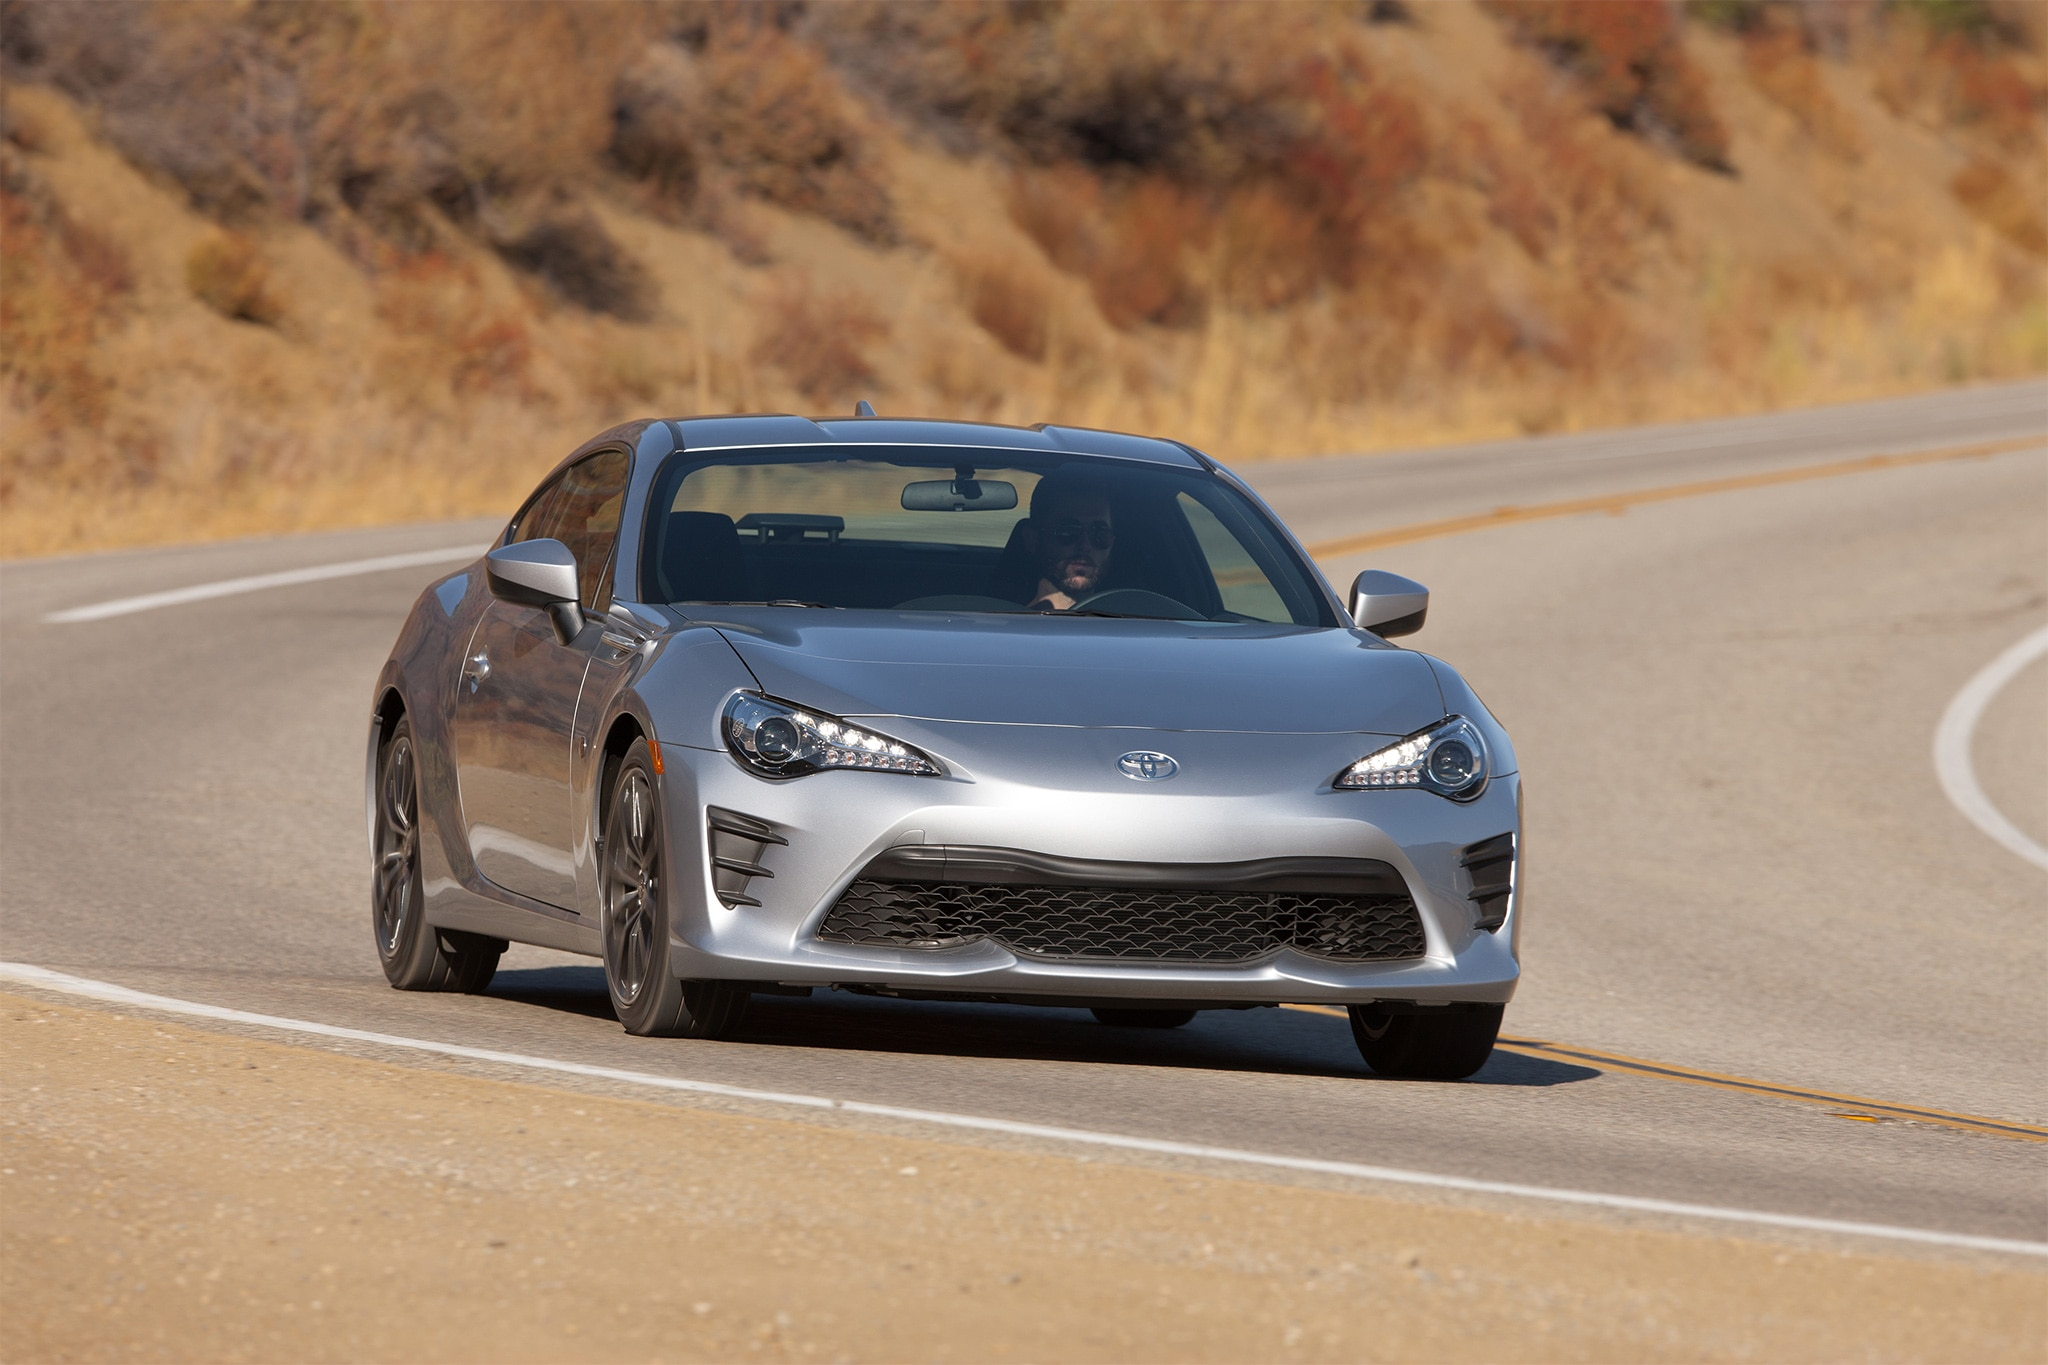 2017 Toyota 86 front three quarter in motion 11